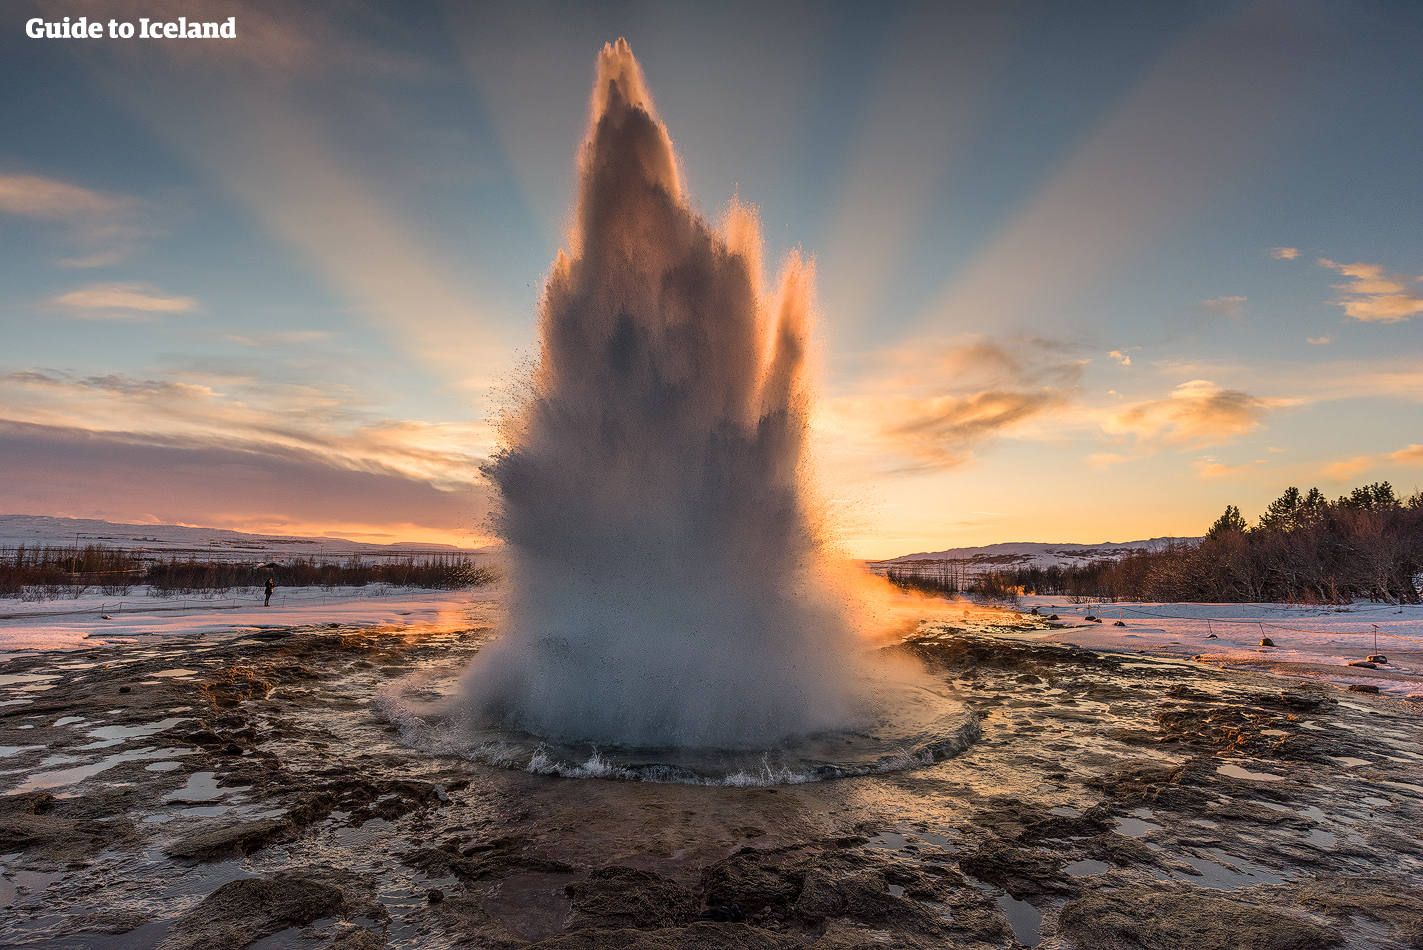 Weather in Iceland | All You Need to Know About the Best Time to Visit and How COVID-19 May Impact Your Decision